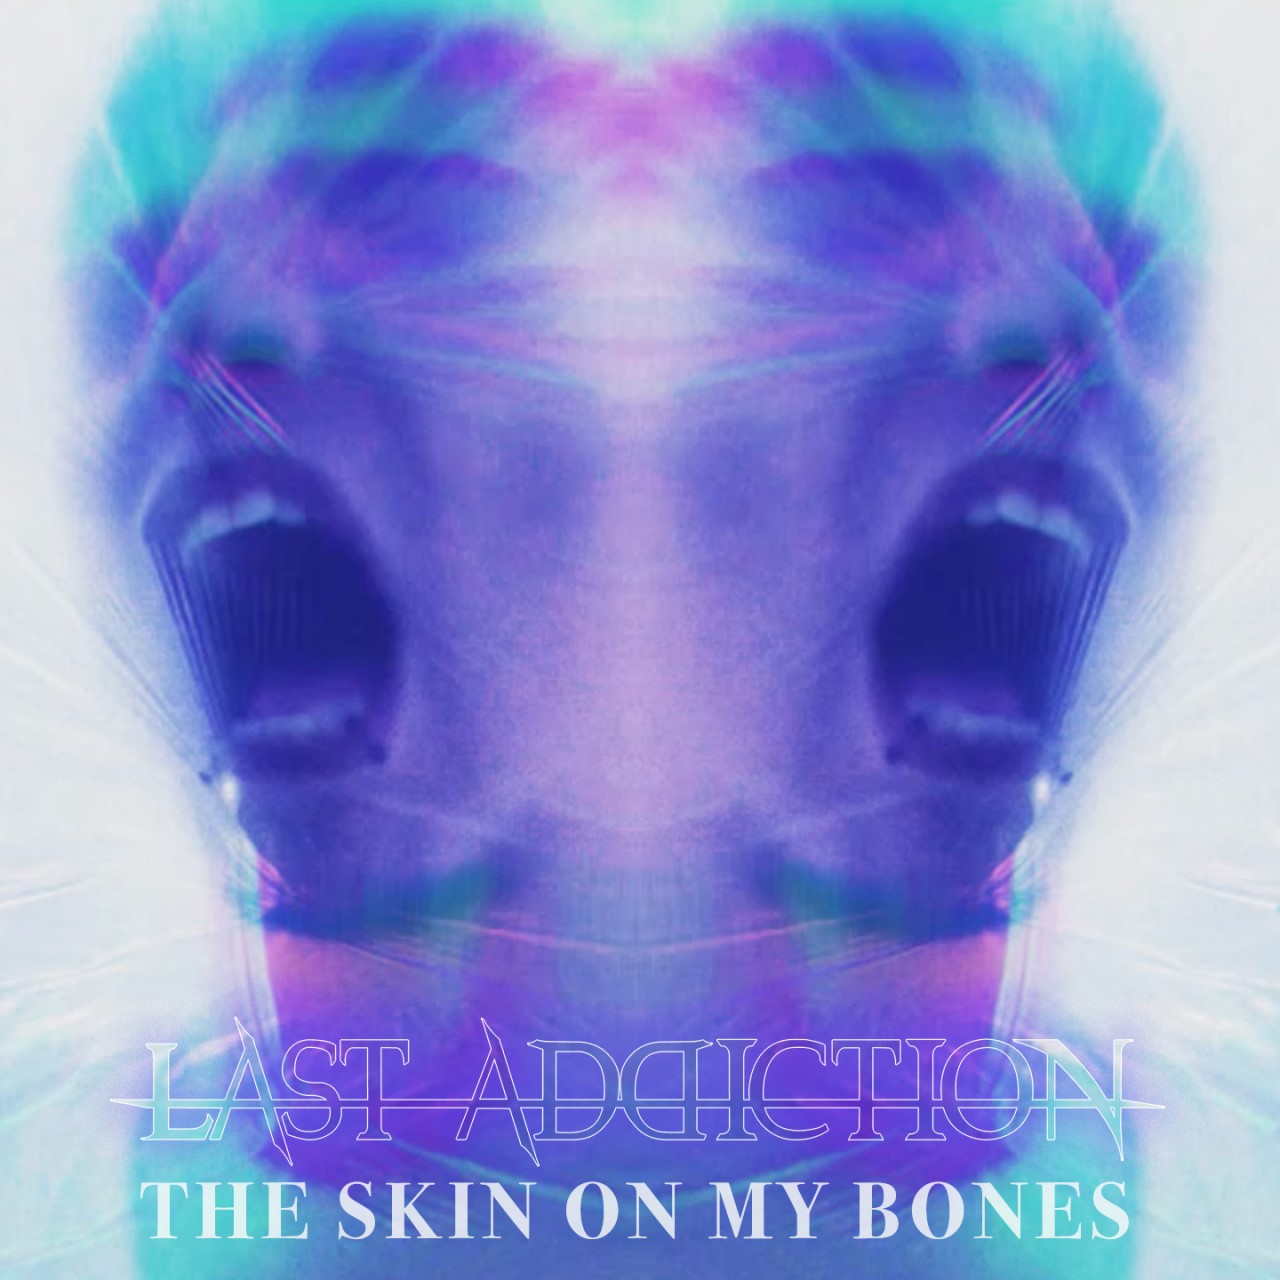 Last Addiction - The Skin On My Bones